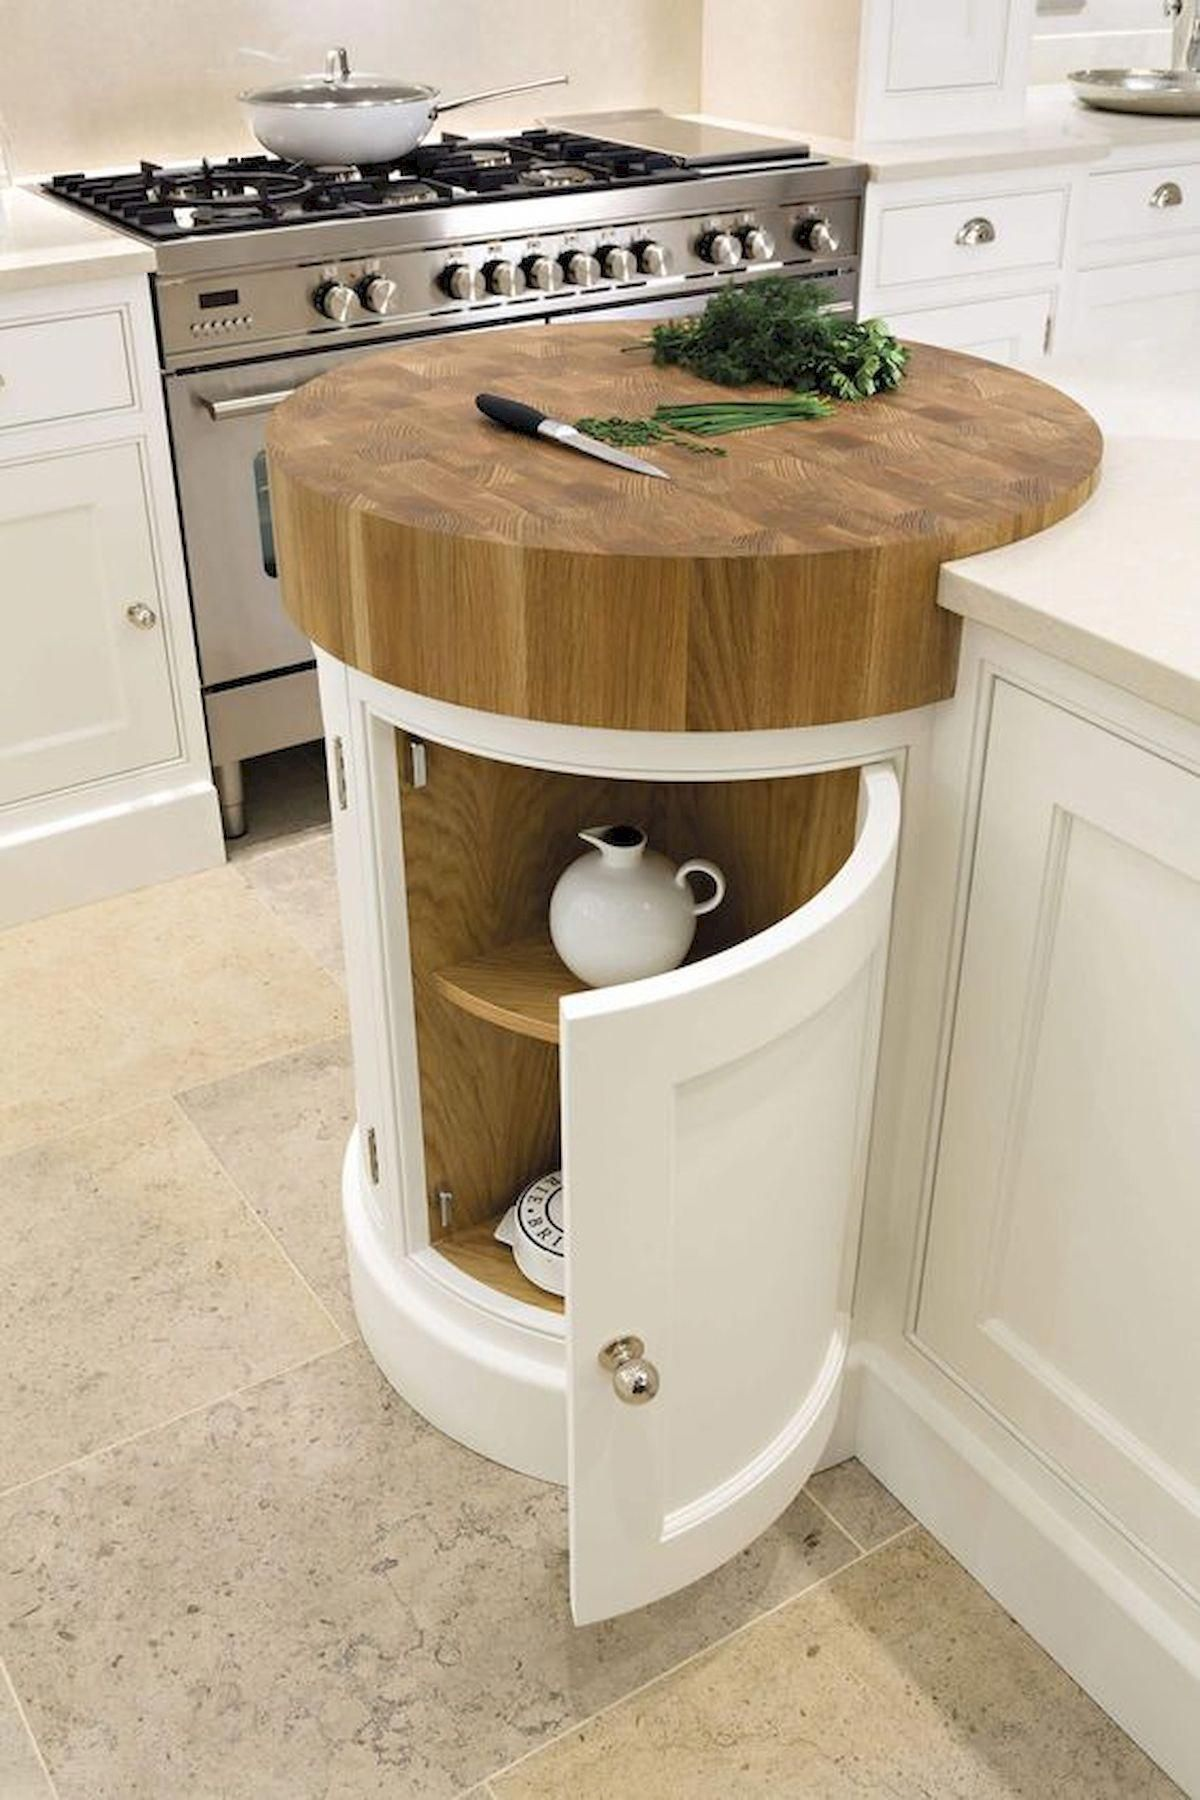 80 Lovely Diy Projects Furniture Kitchen Storage Design Ideas Repin By At Social Media Marketing Pin Kitchen Trends Kitchen Remodel Small Top Kitchen Trends